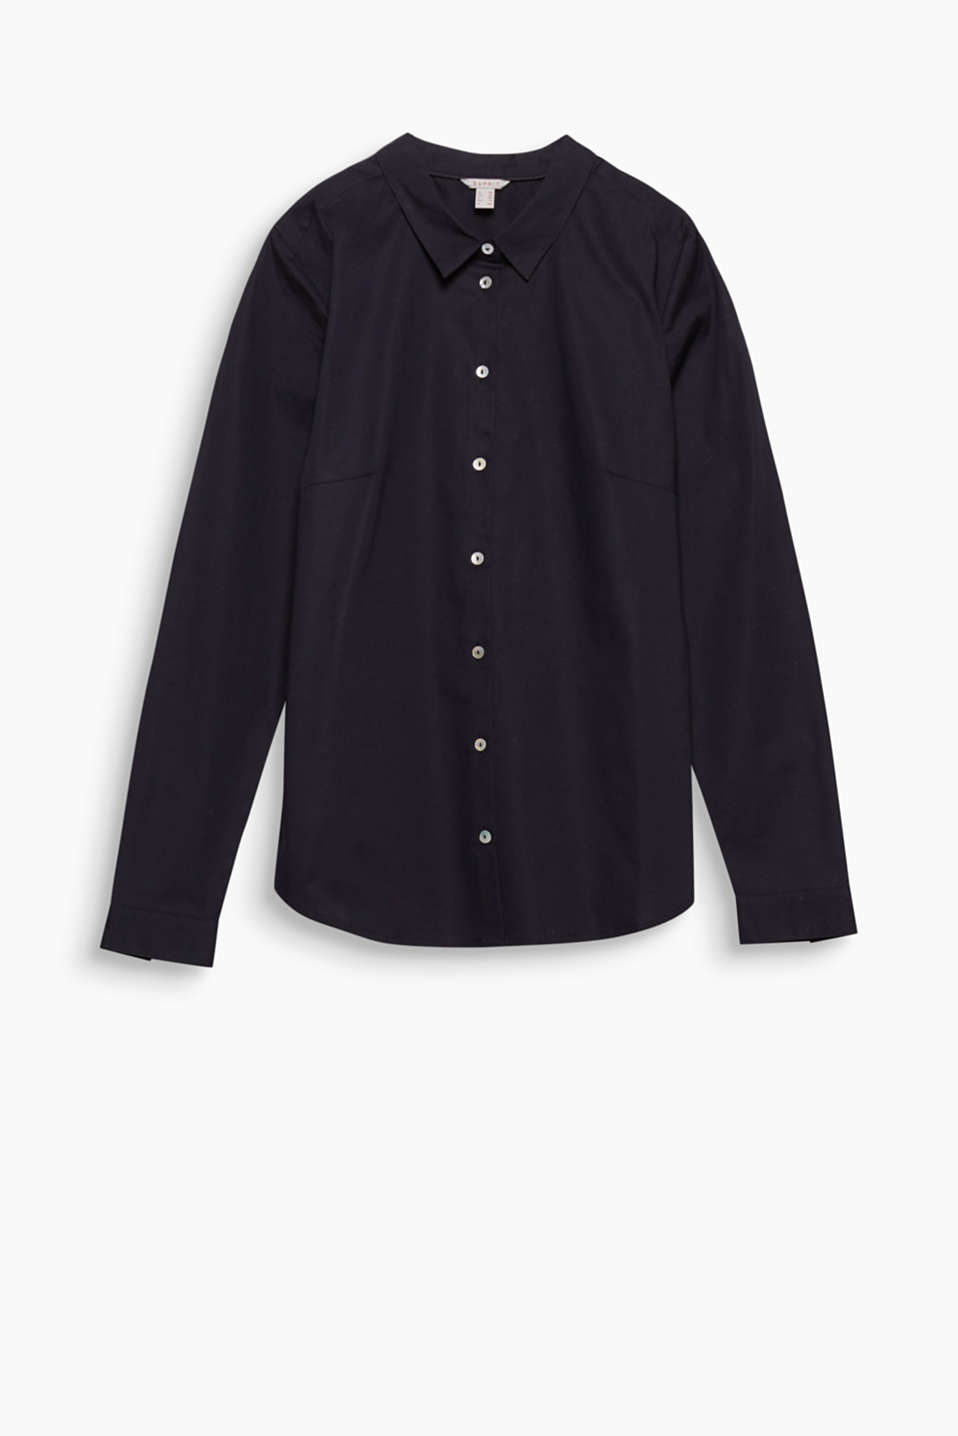 Goes with both business trousers and your favourite jeans: fitted shirt blouse in comfortable stretch cotton!